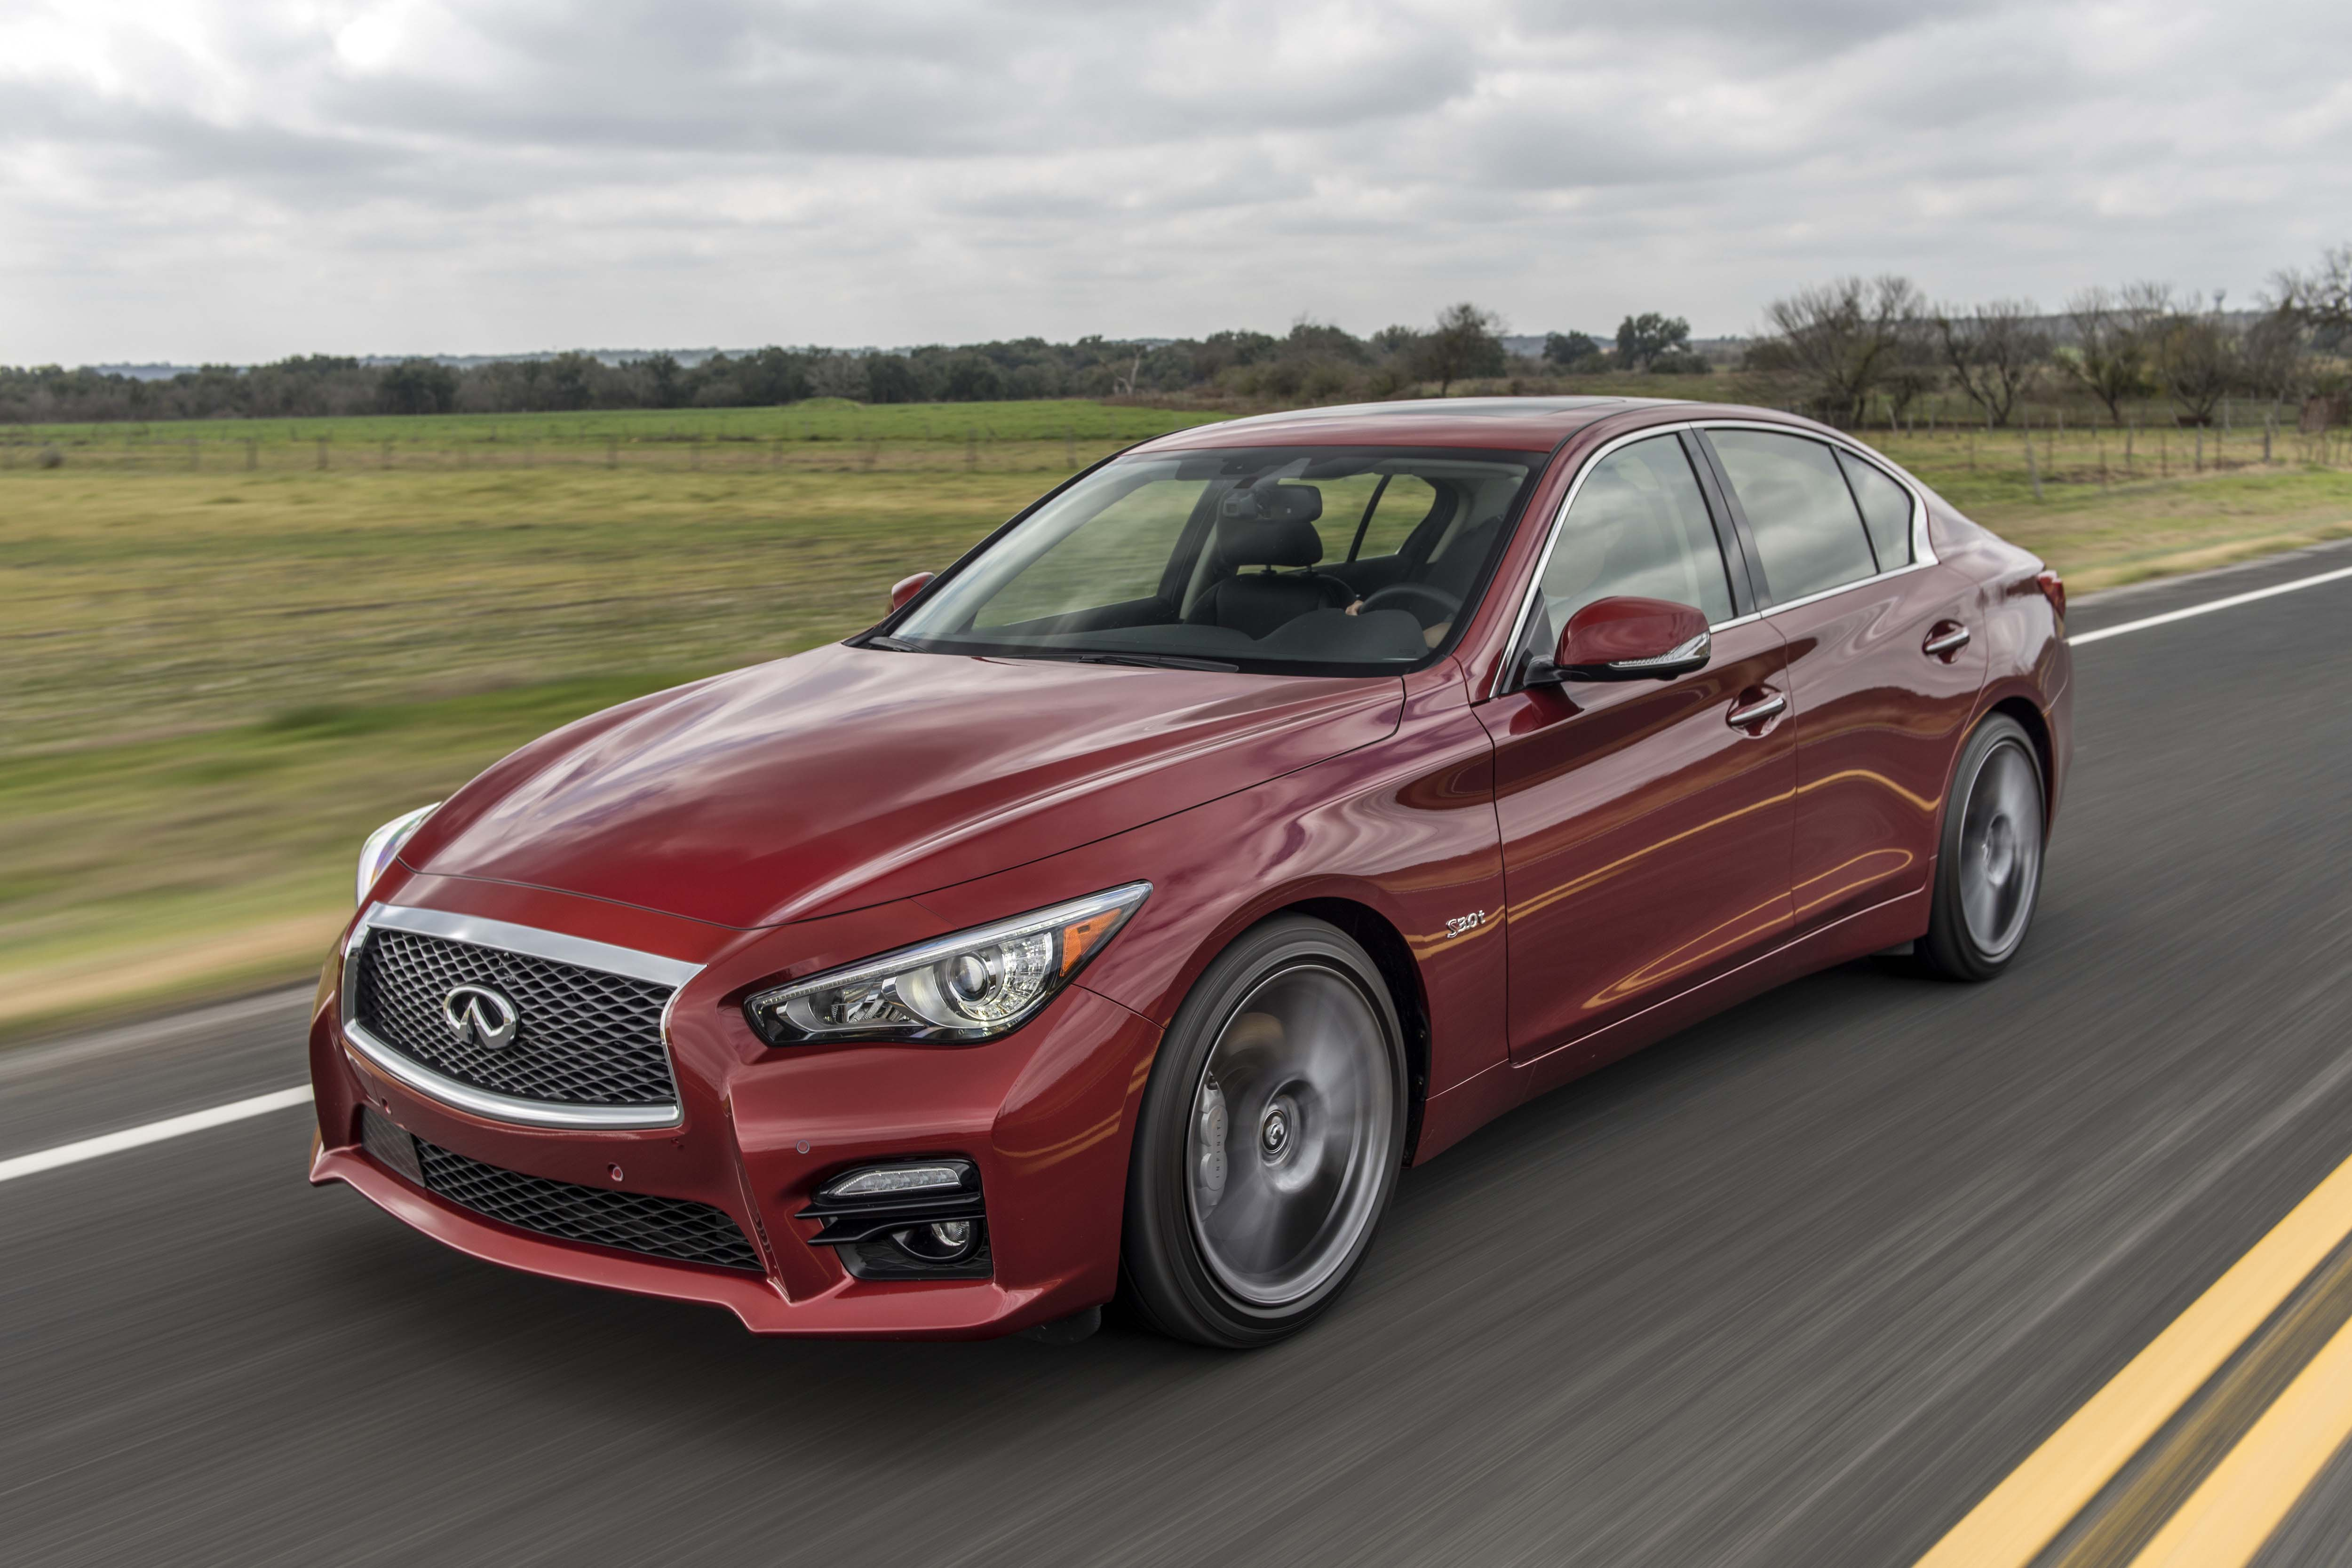 Infiniti Q50 Models Equipped With The 3.0 Liter V6 Twin Turbo 400 Hp Engine